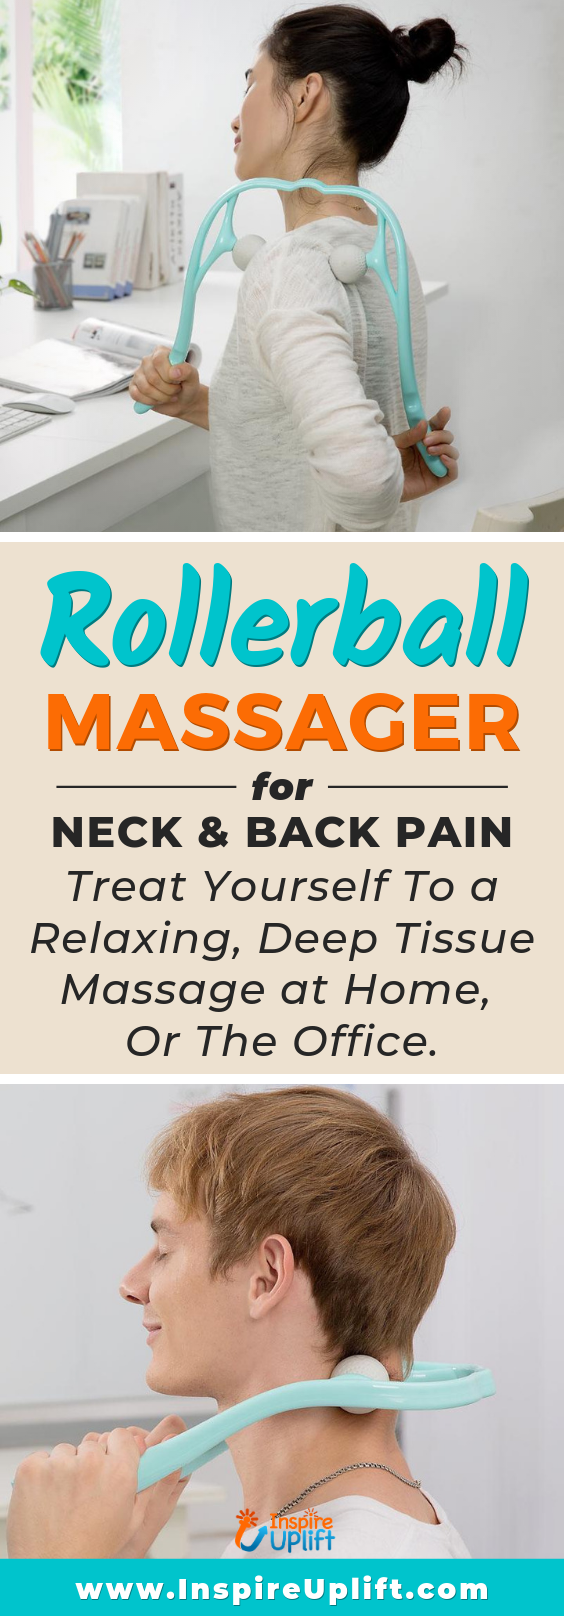 Rollerball Massager for Neck & Back Pain 😍 InspireUplift.com